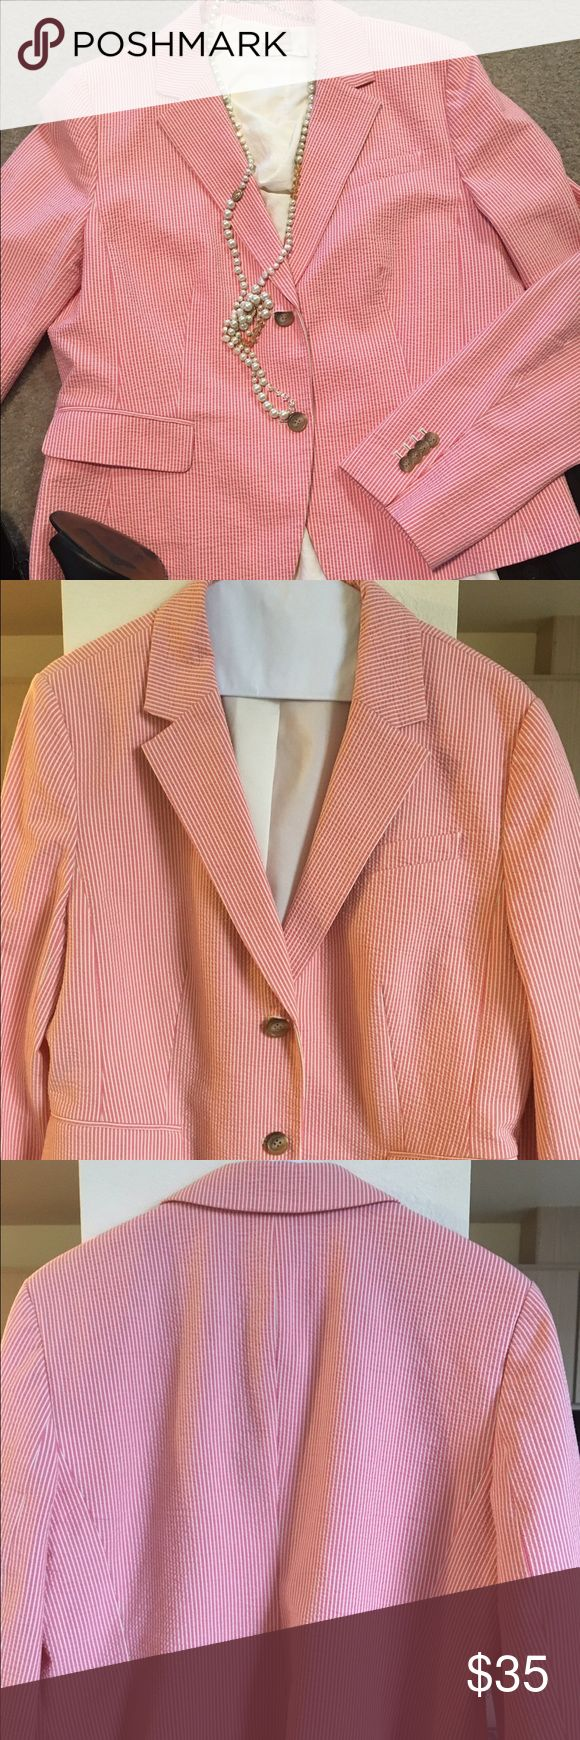 Seersucker coral/peachy jacket by Ann Taylor This seersucker jacket can be your casual go to or for work. The coral/peachy color looks great with black or cream. The ability to dress it up or down makes it a great staple. Shell is 97% cotton and 3% spandex. Lining is 100% polyester. Jacket is dry clean only. Ann Taylor Jackets & Coats Blazers